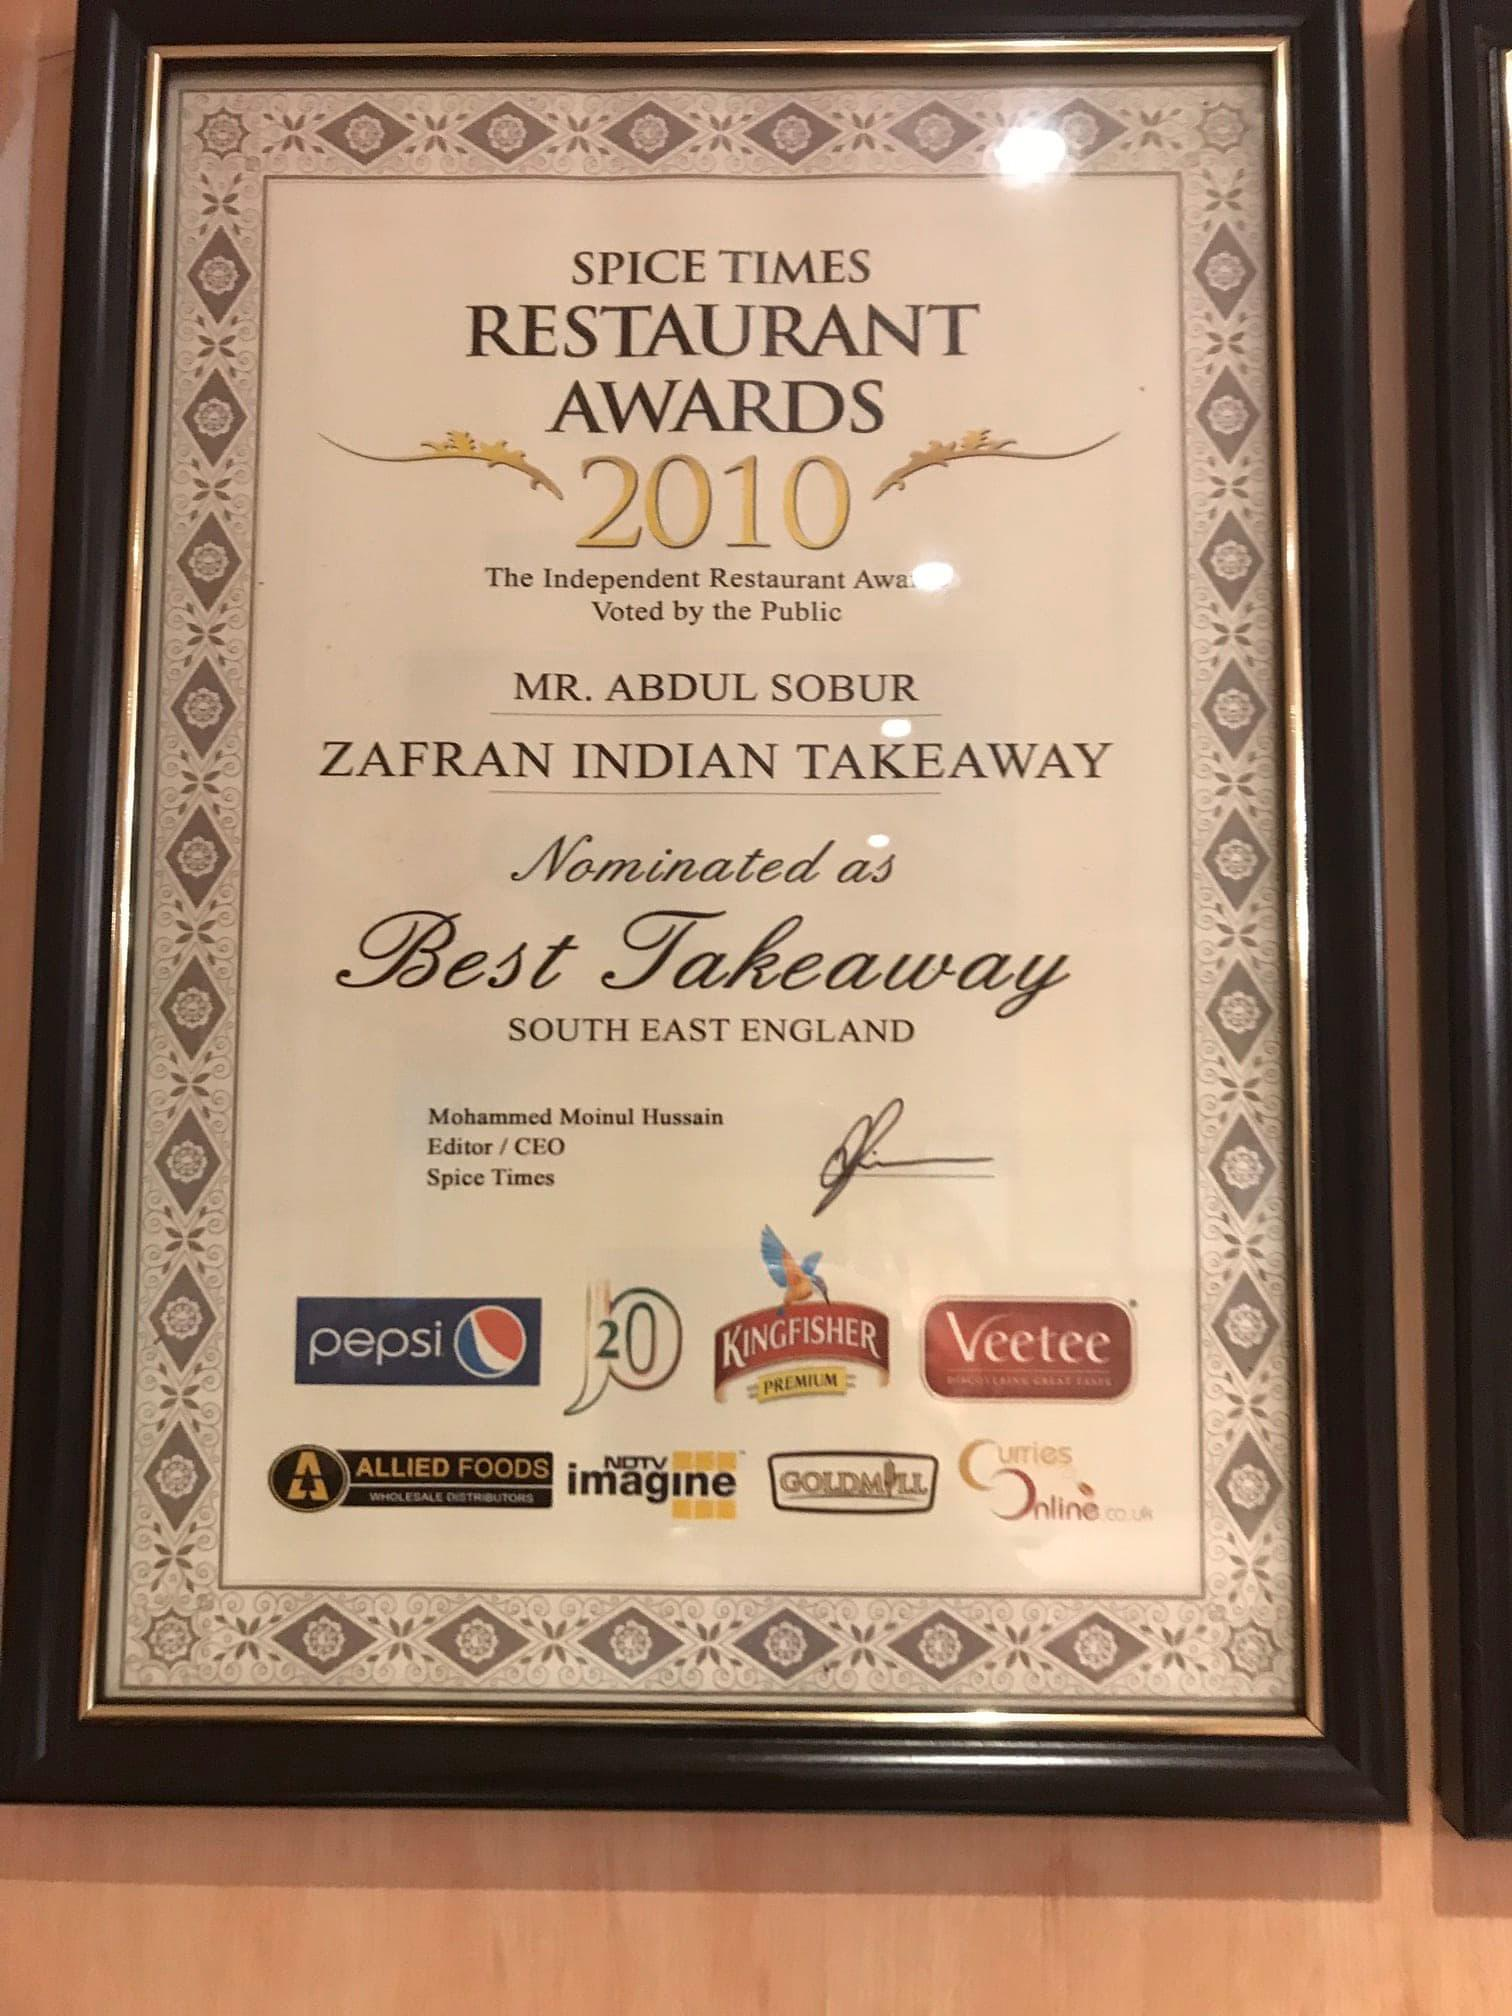 Zafran Indian Takeaway